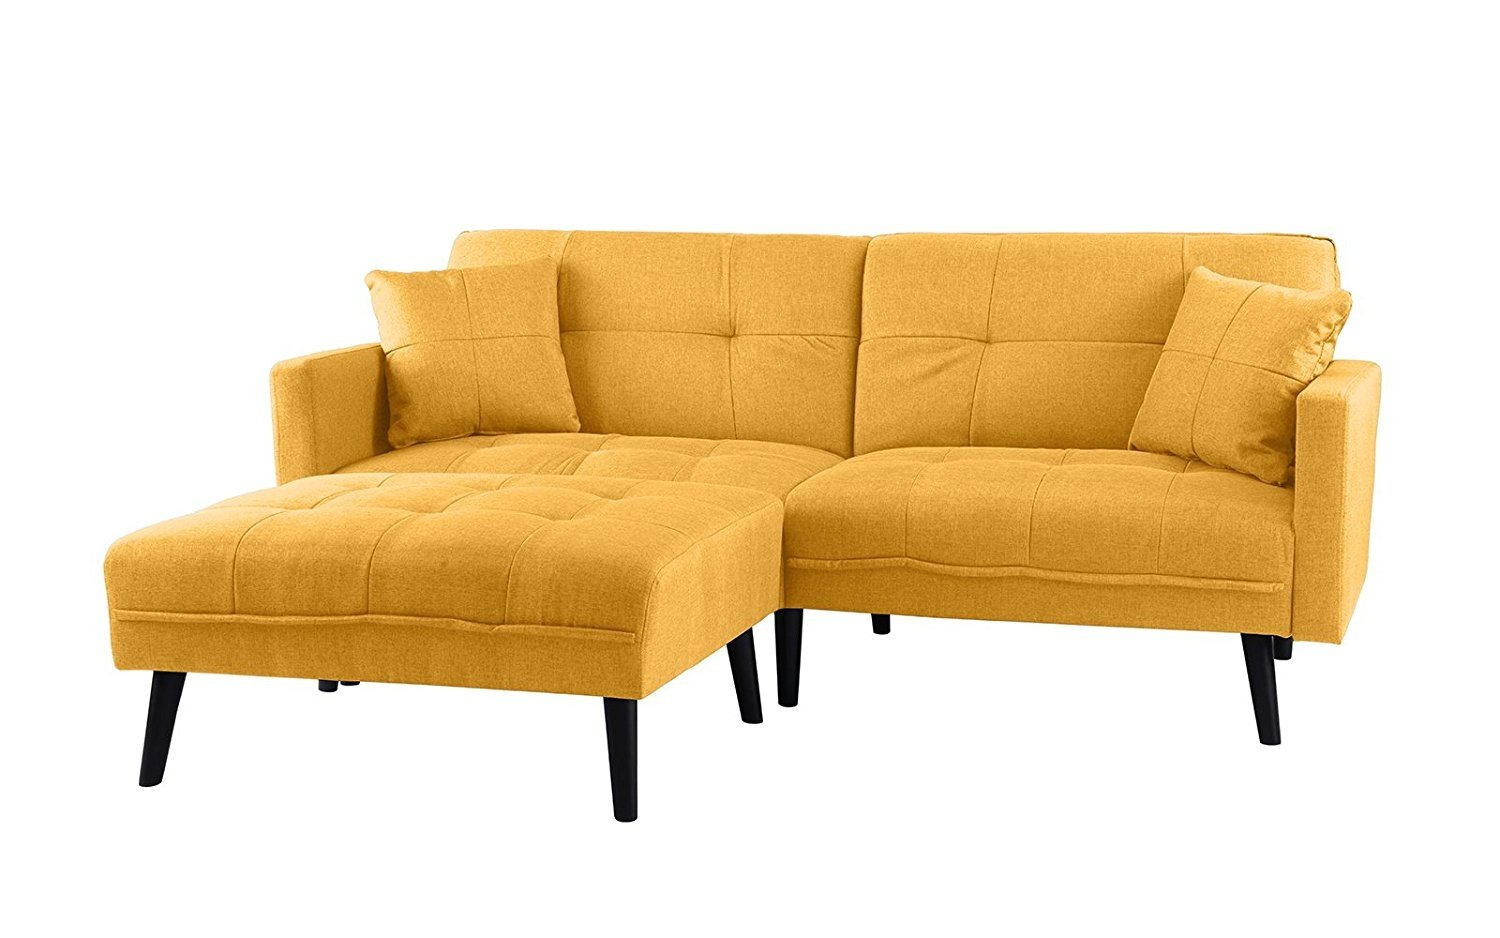 new style 49b04 698e4 Details about Mid-Century Modern Linen Fabric Futon Sofa Bed, Living Room  Couch Sleeper Yellow